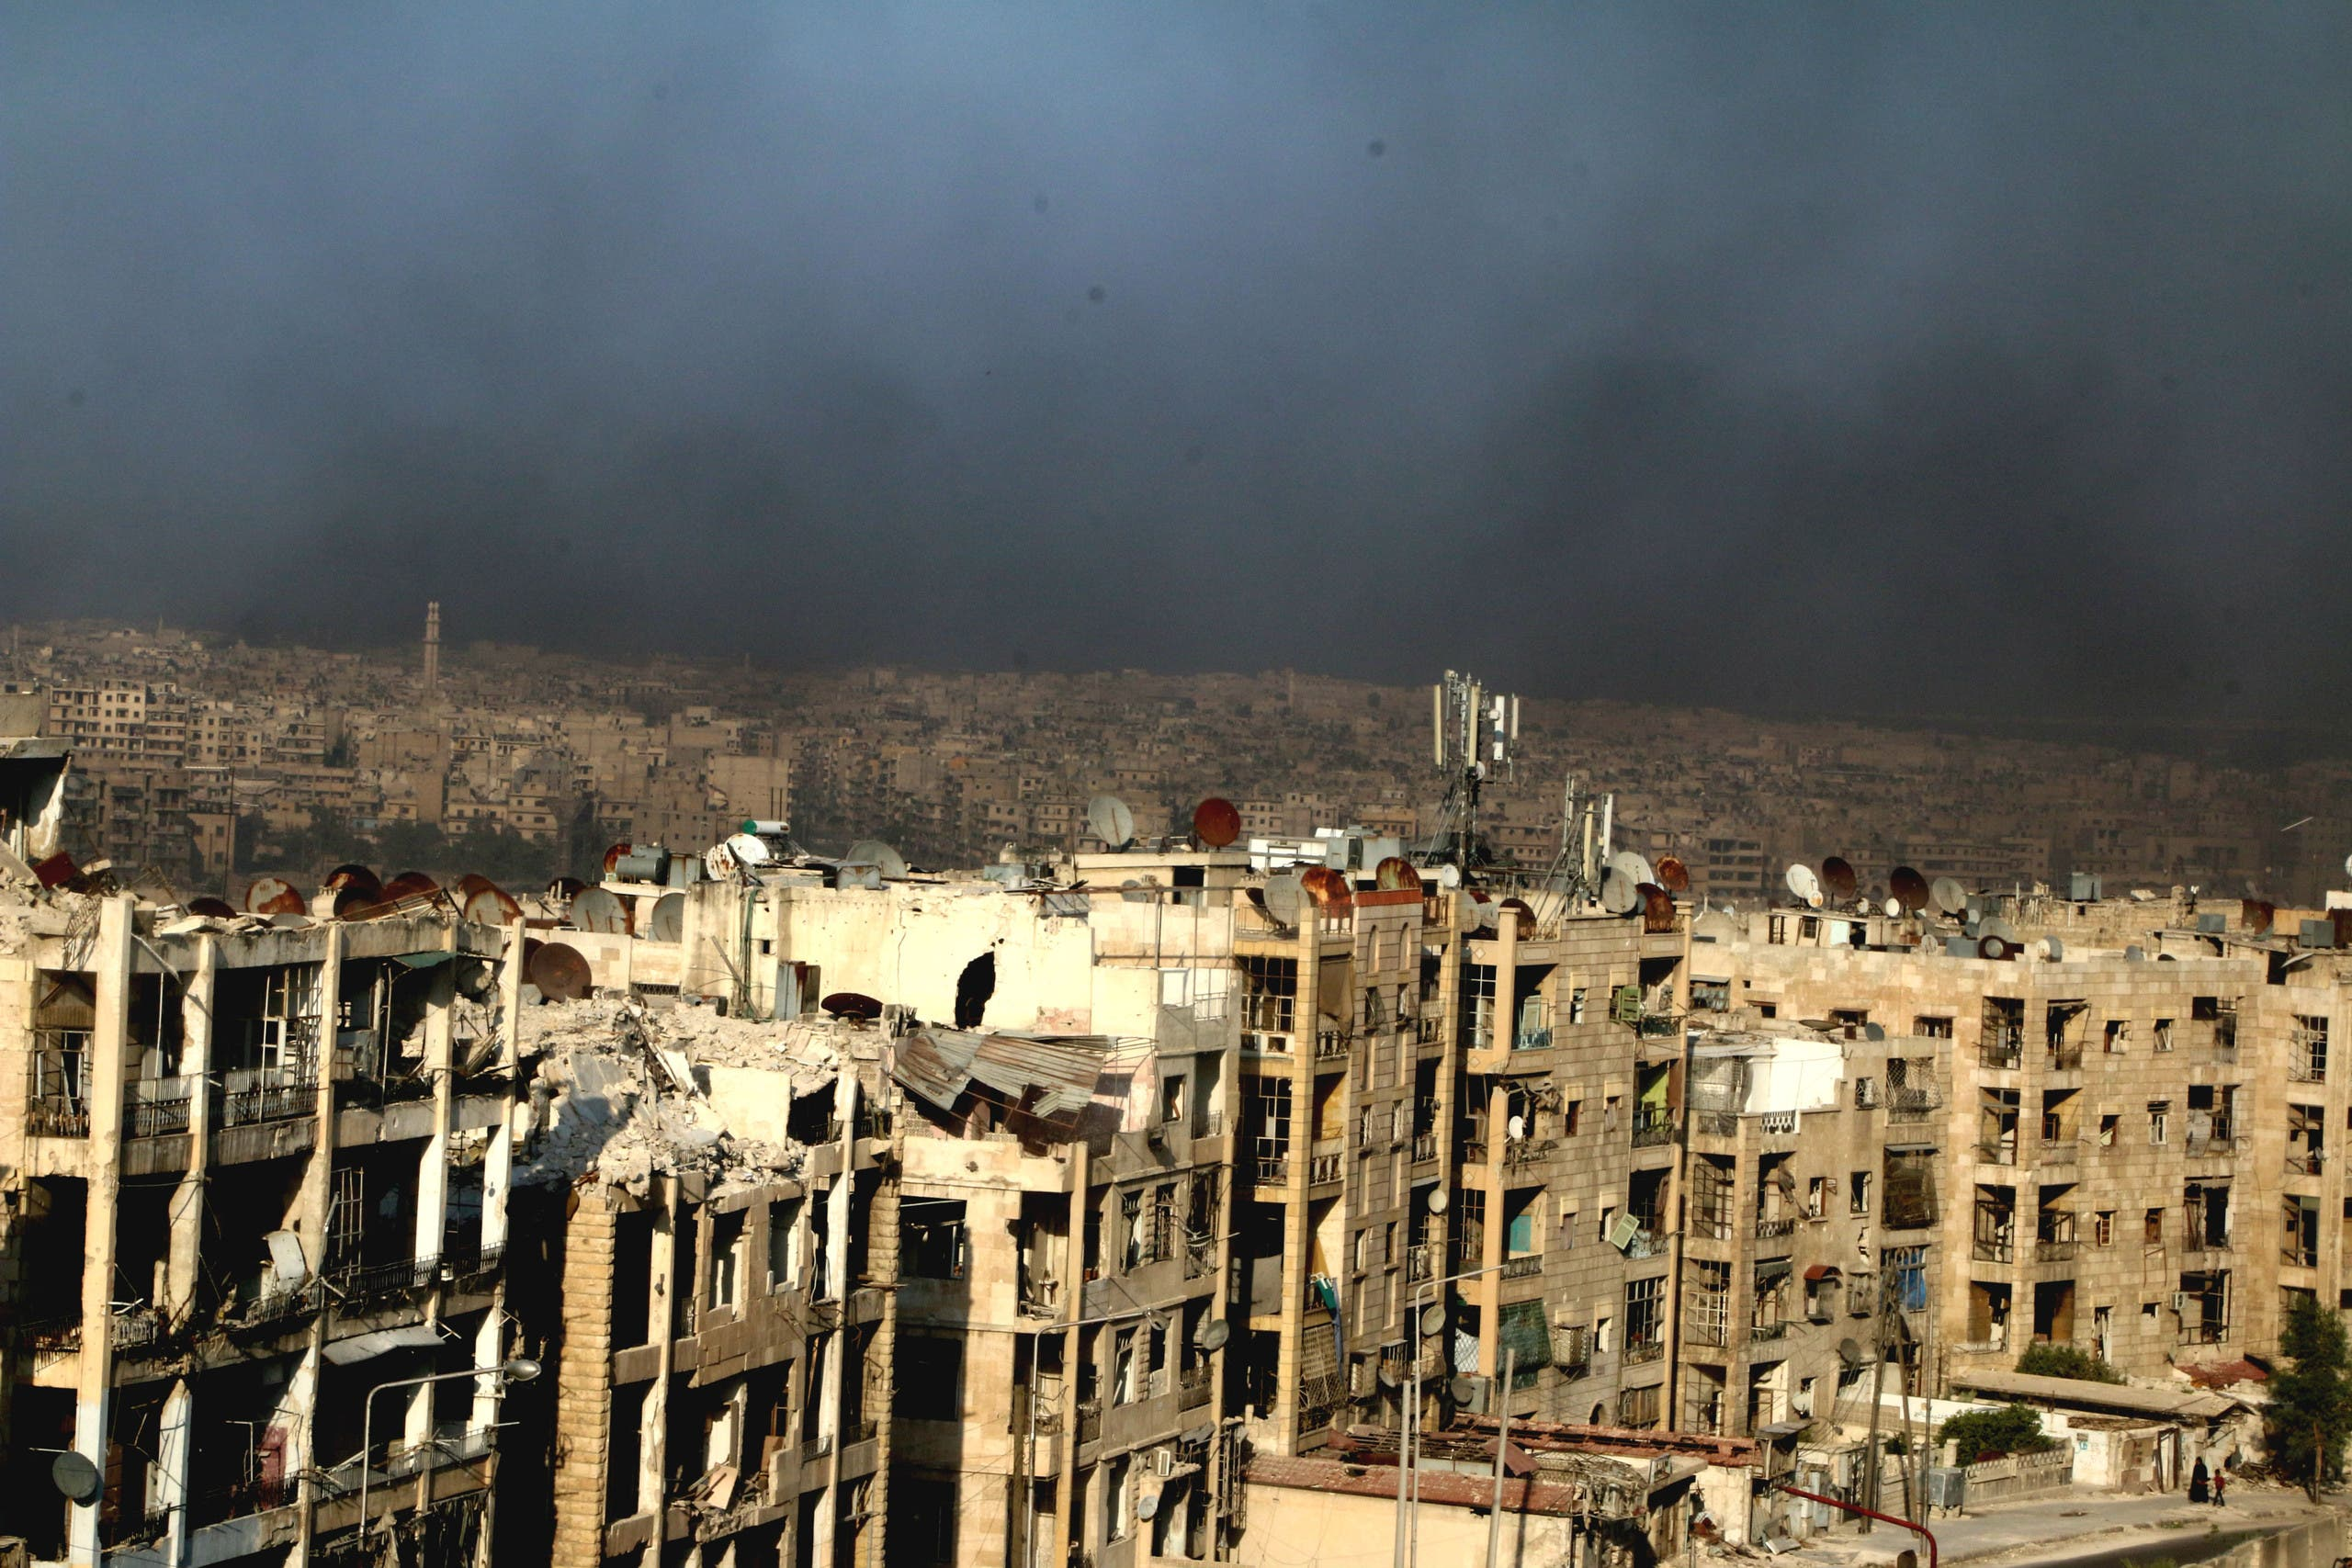 A general view shows rising smoke from burning tyres, which activists said are used to create smoke cover from warplanes, in Aleppo, Syria August 1, 2016. (Reuters)